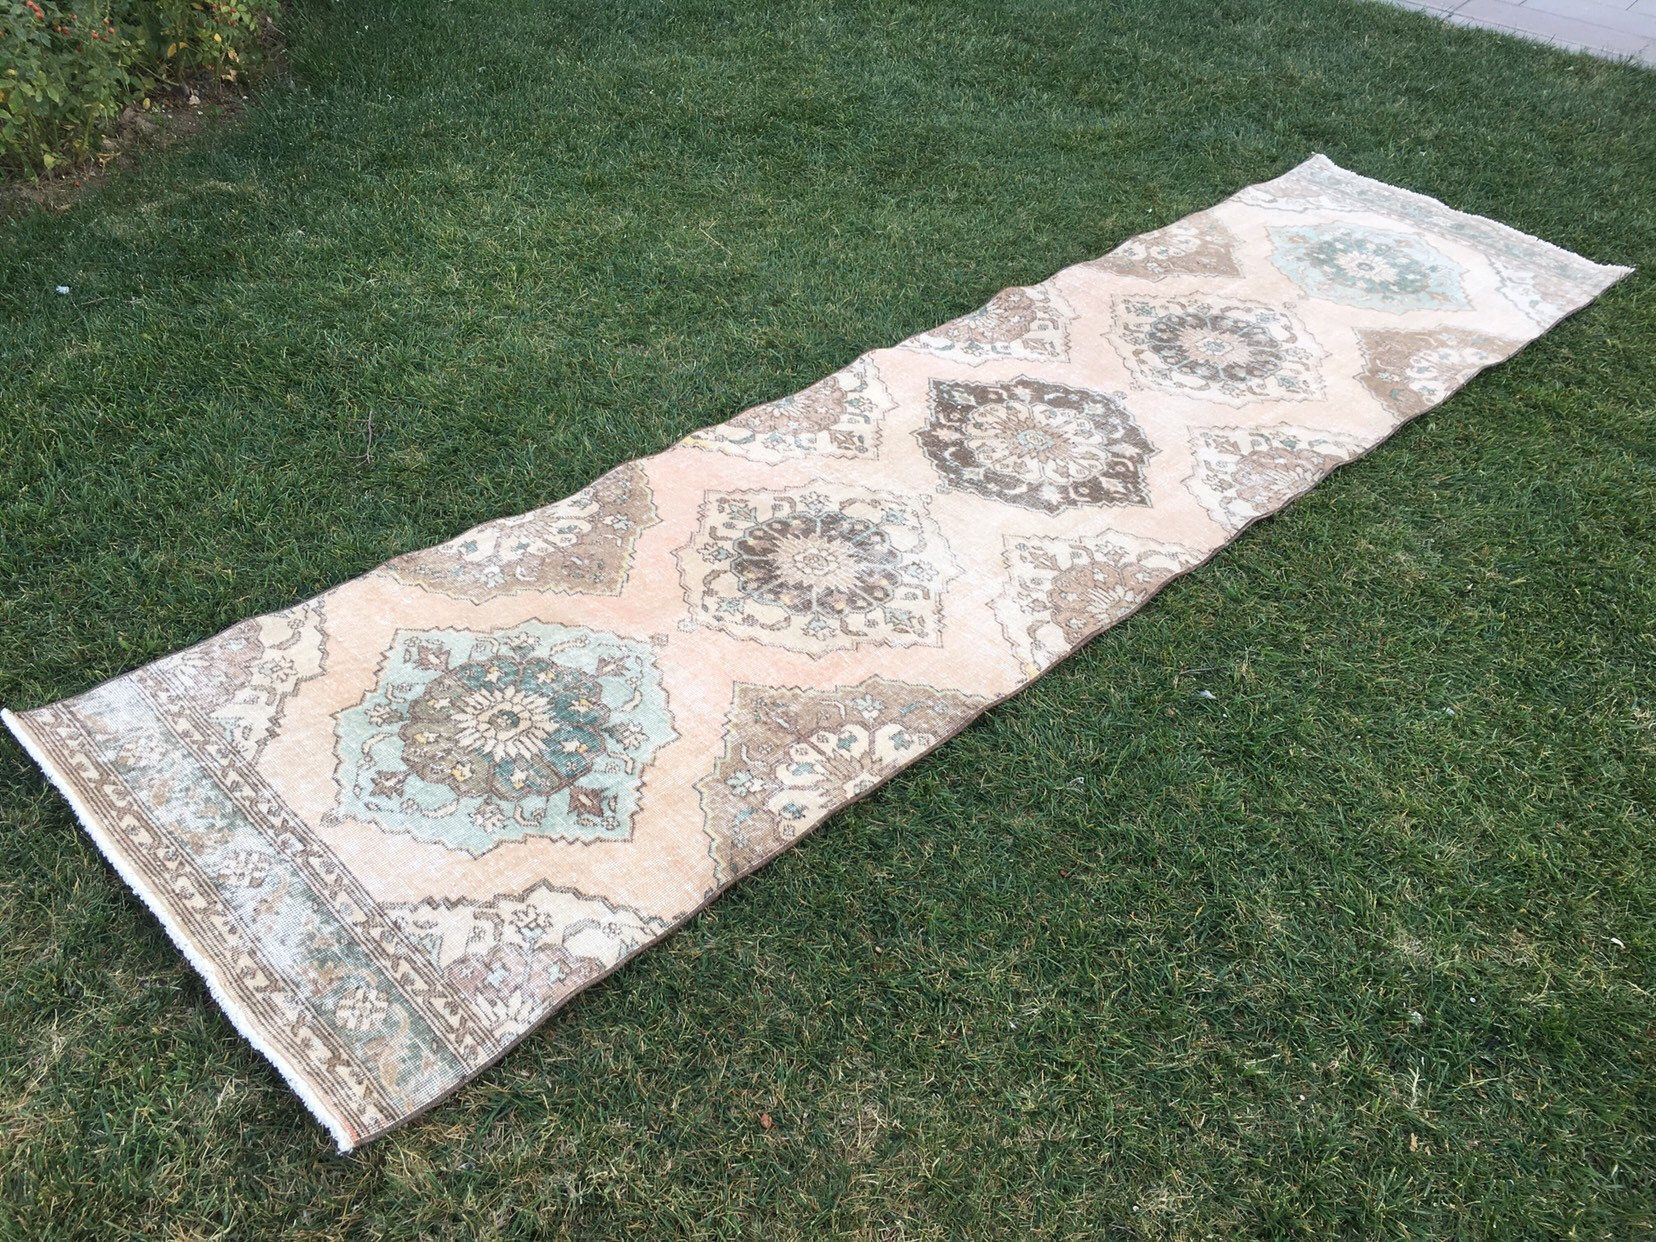 Excited to share this item from my shop Large Runner RugLarge Hallway Runner RugTurkish Large Runner RugVintage Large Runner Rug31x124Large Oushak Runner Ruglow Pile Rug